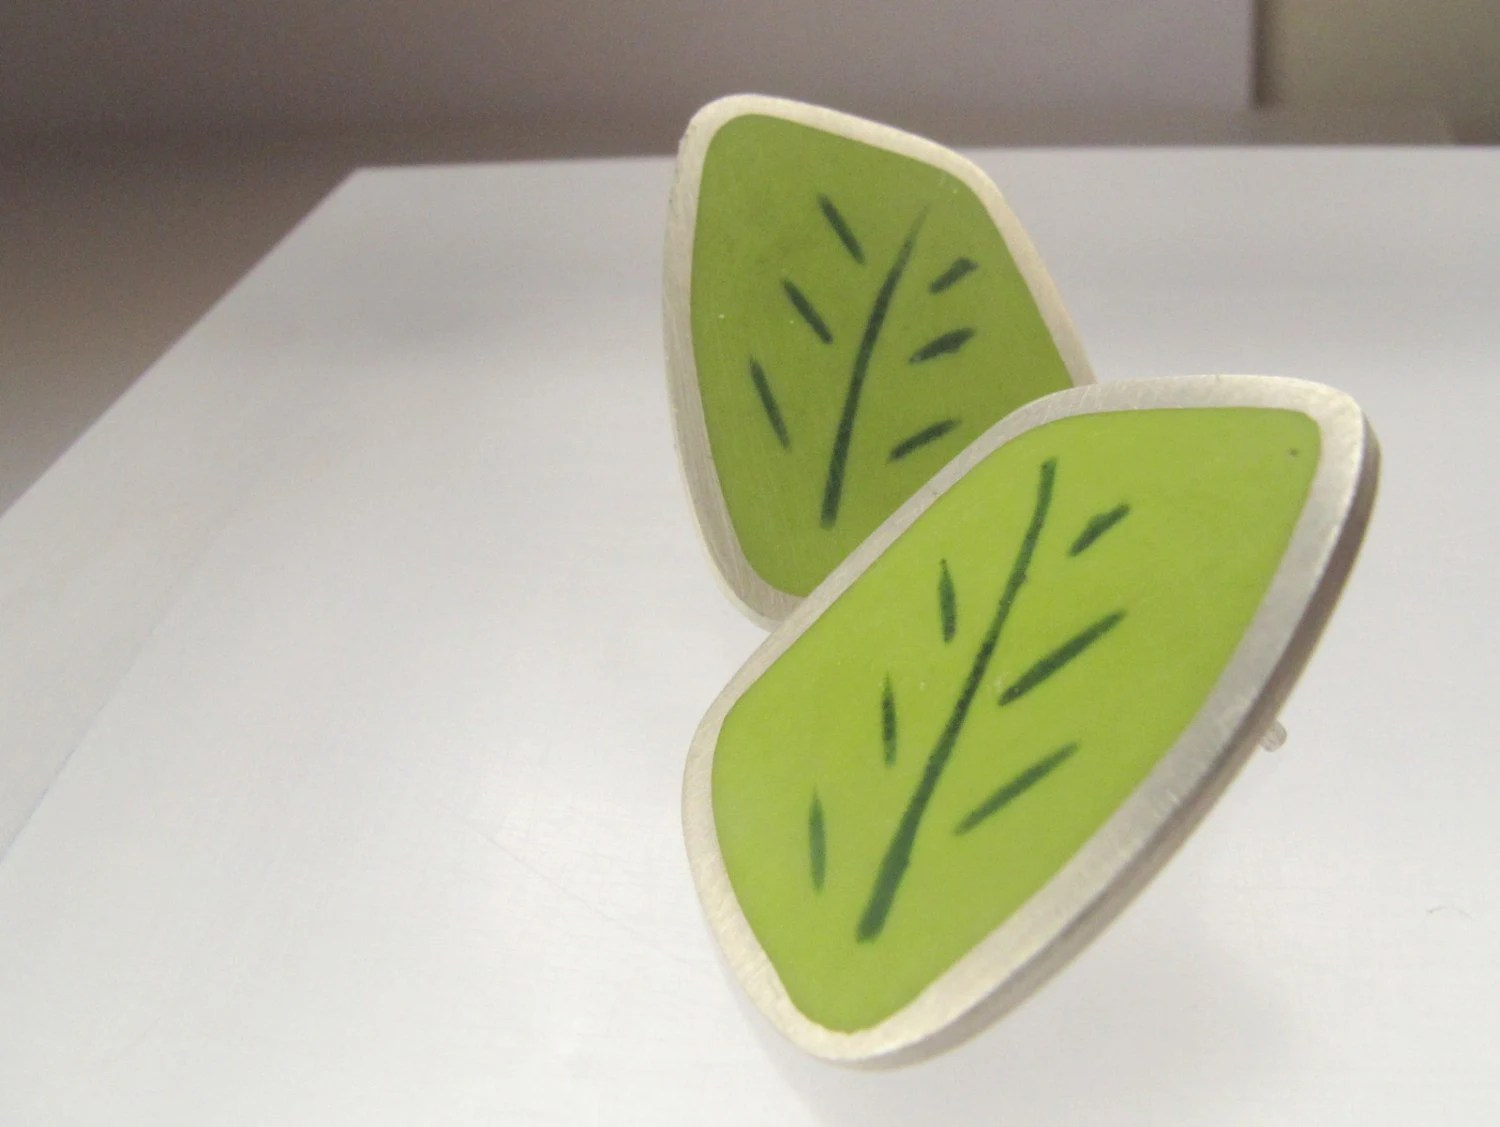 Geometric Lime Green Earring - Stud - Resin & Silver Jewelry - Leaf - QuercusSilver